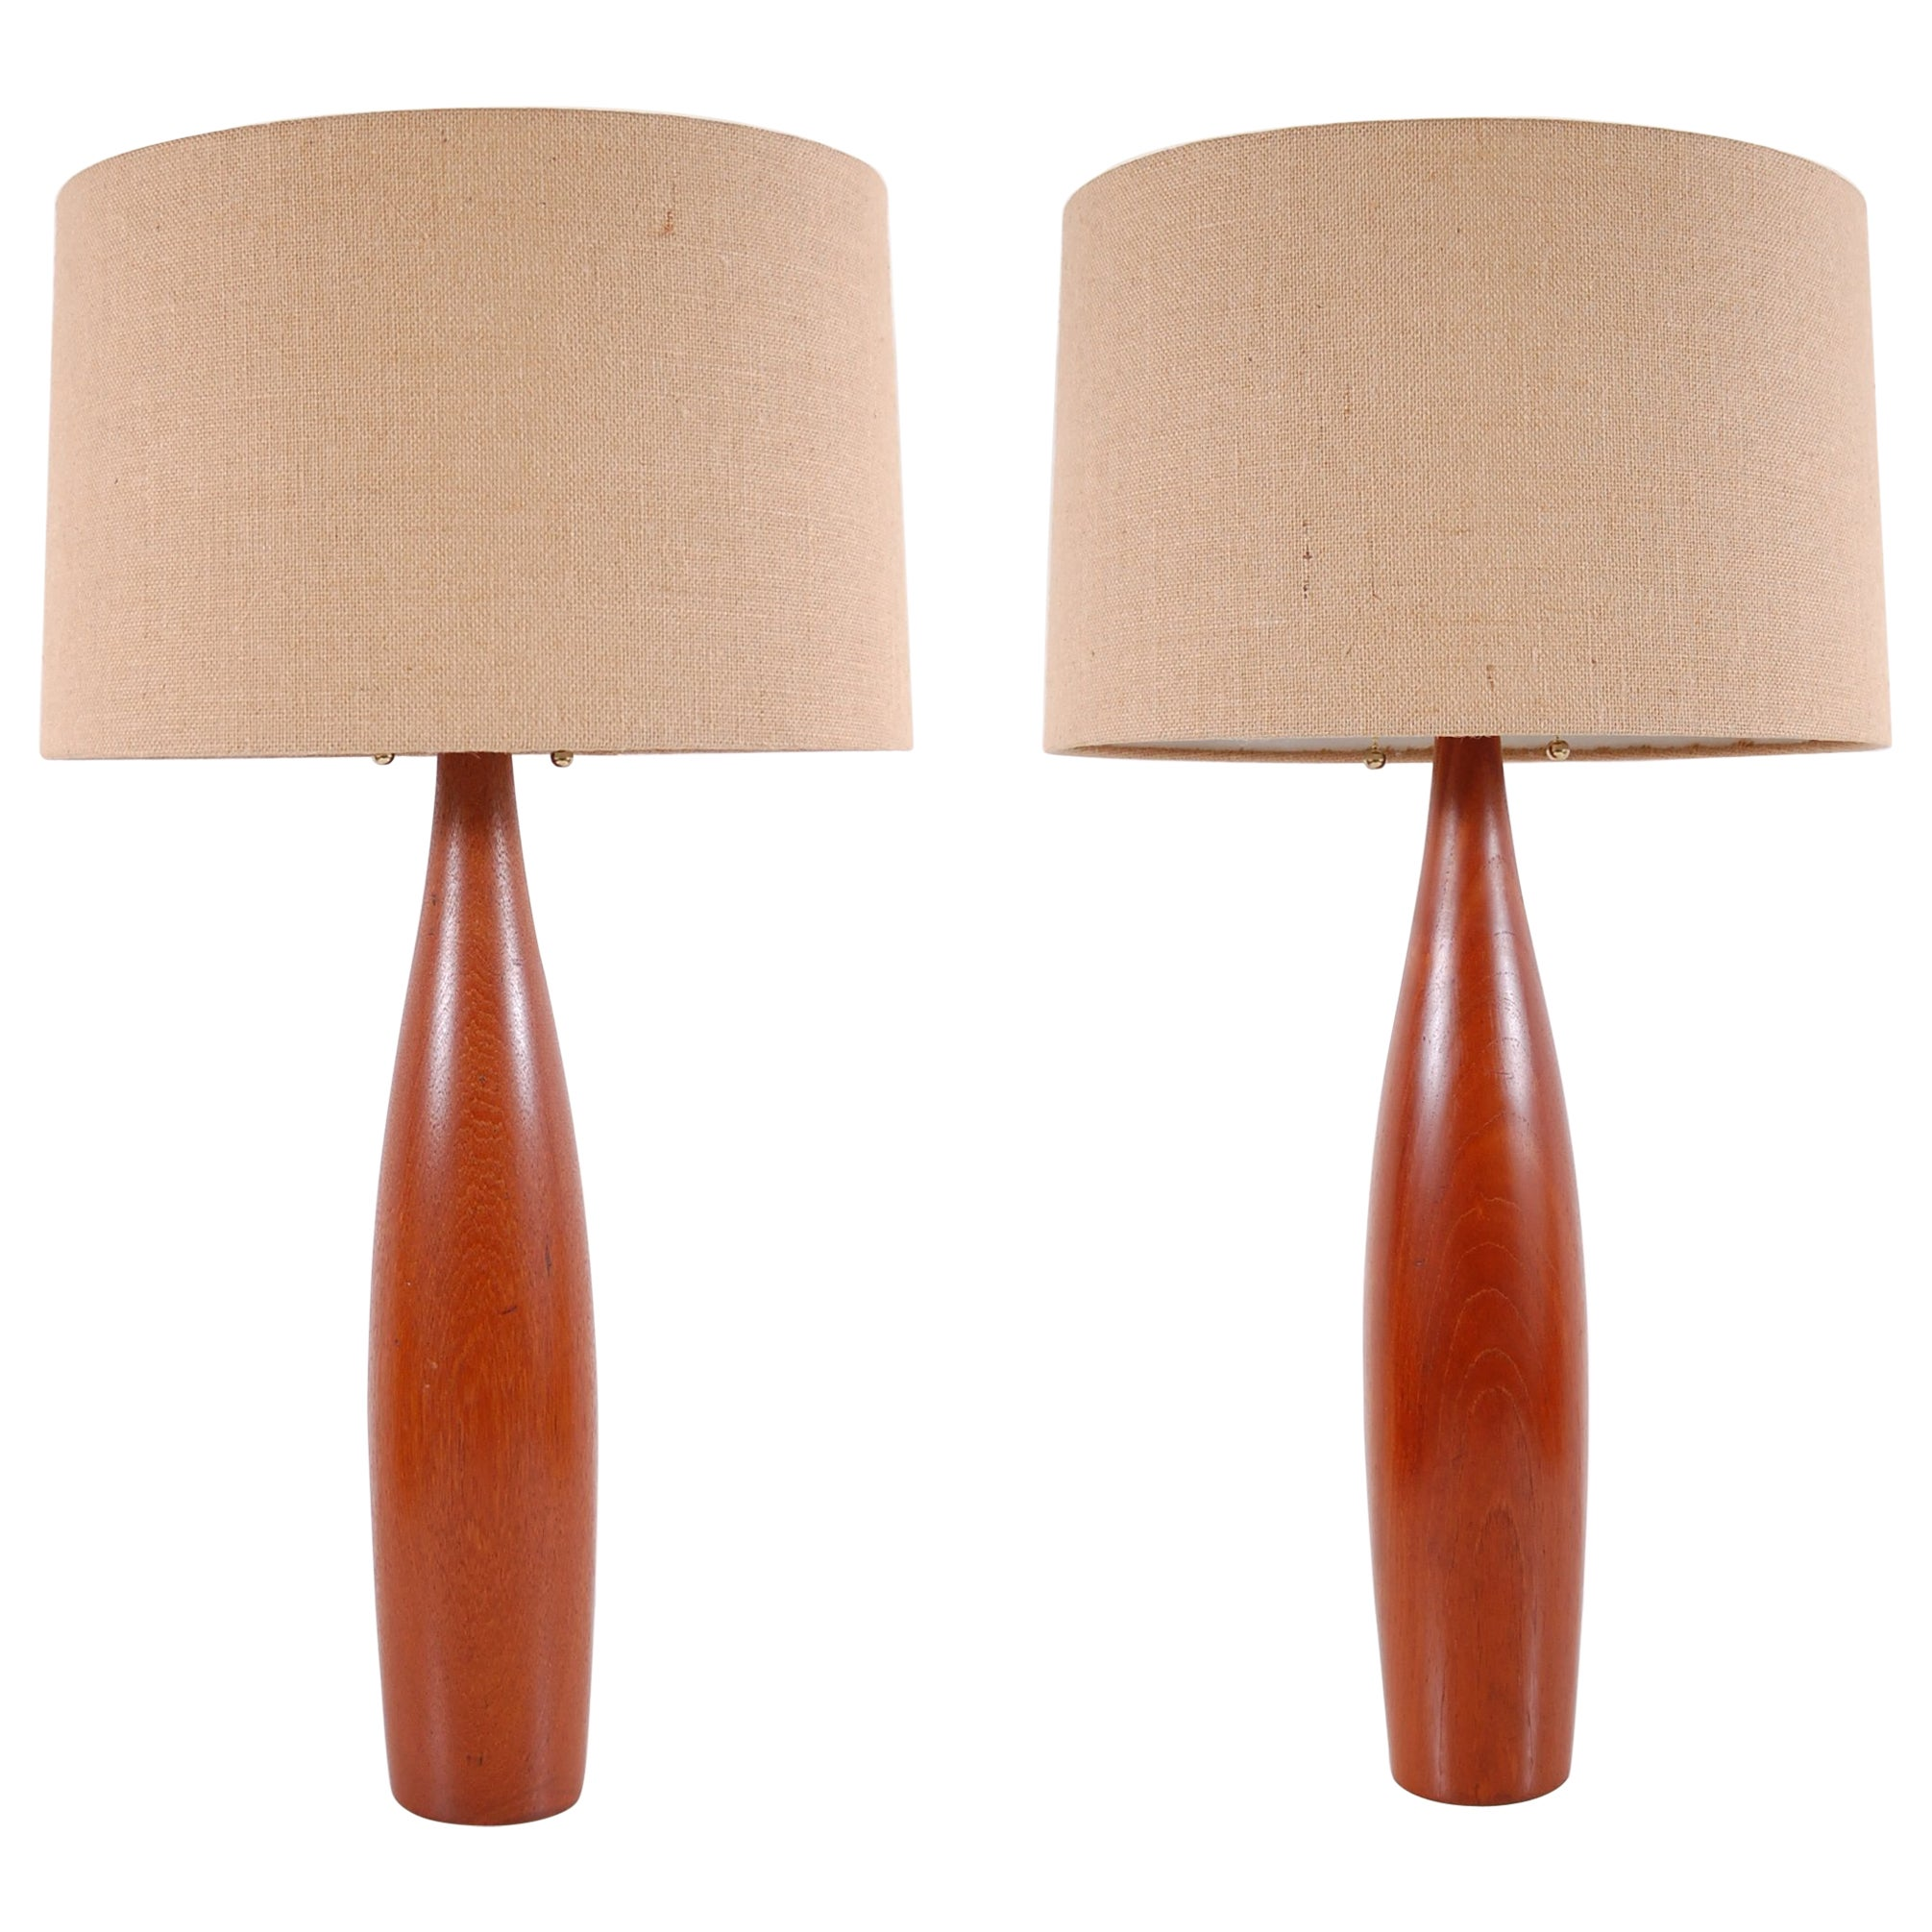 Pair of Turned Teak Lamps from Denmark